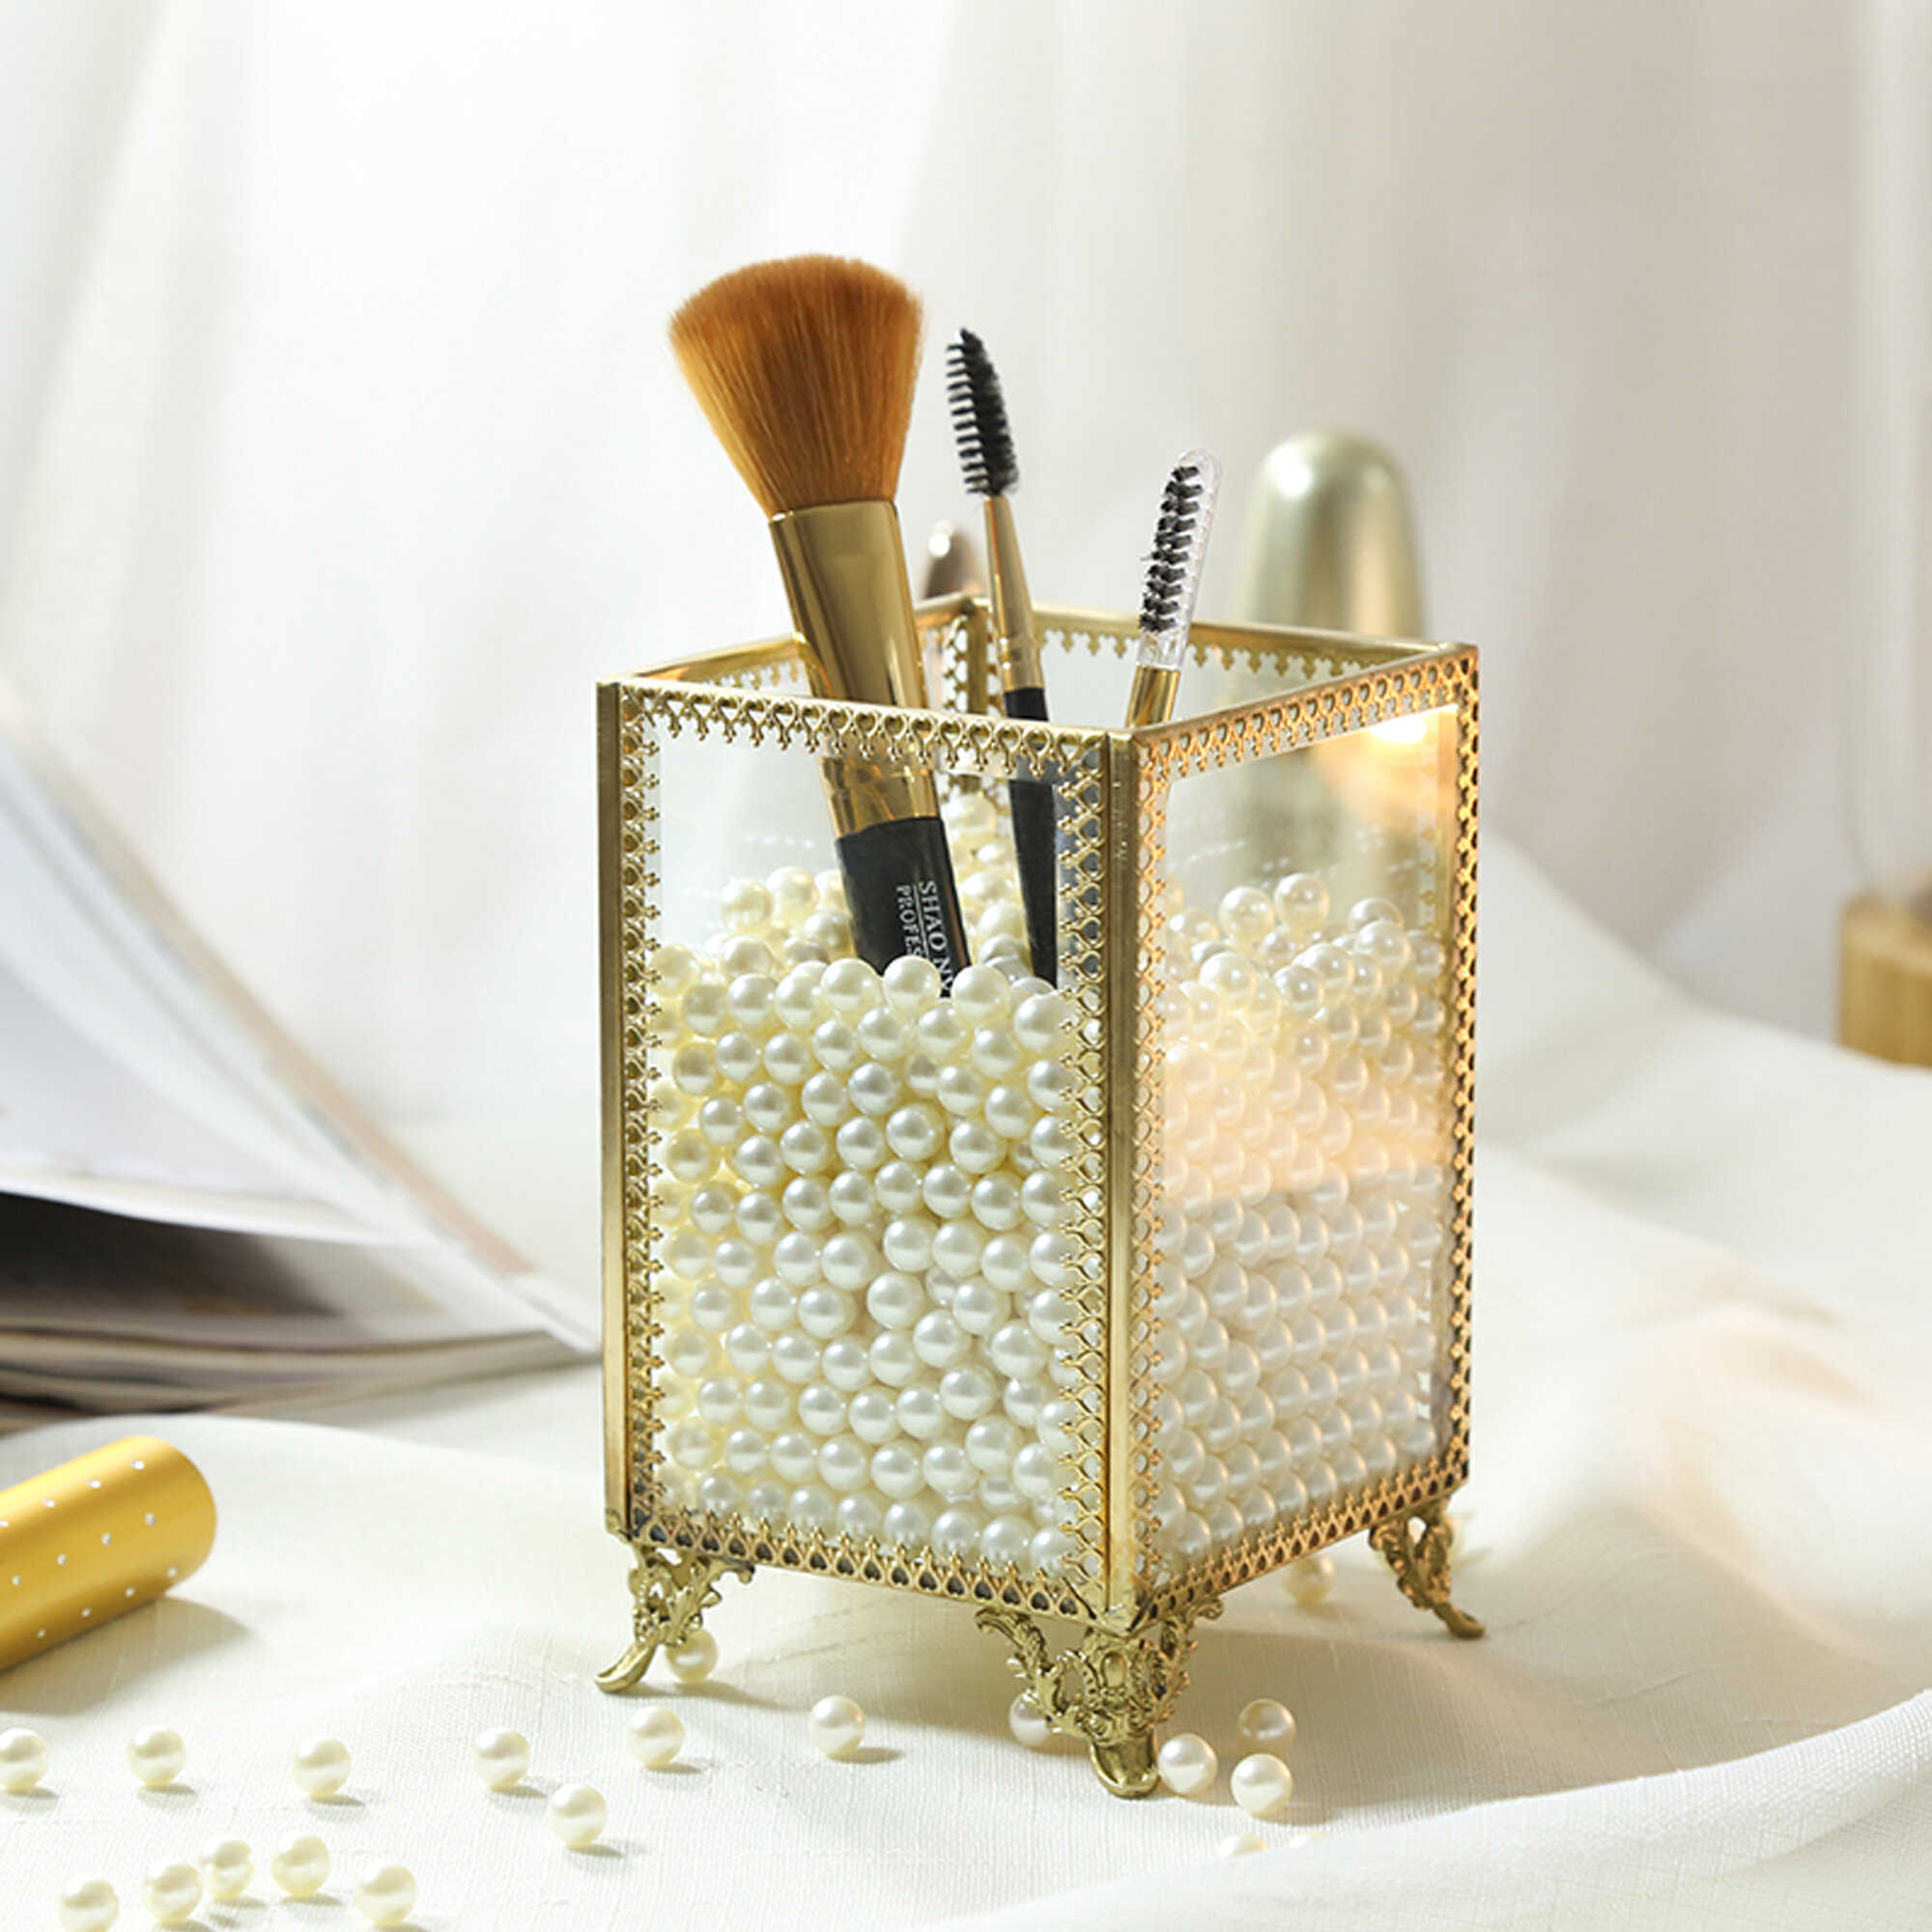 Condon Glass and Pearls Brush Holder Cosmetic Organizer